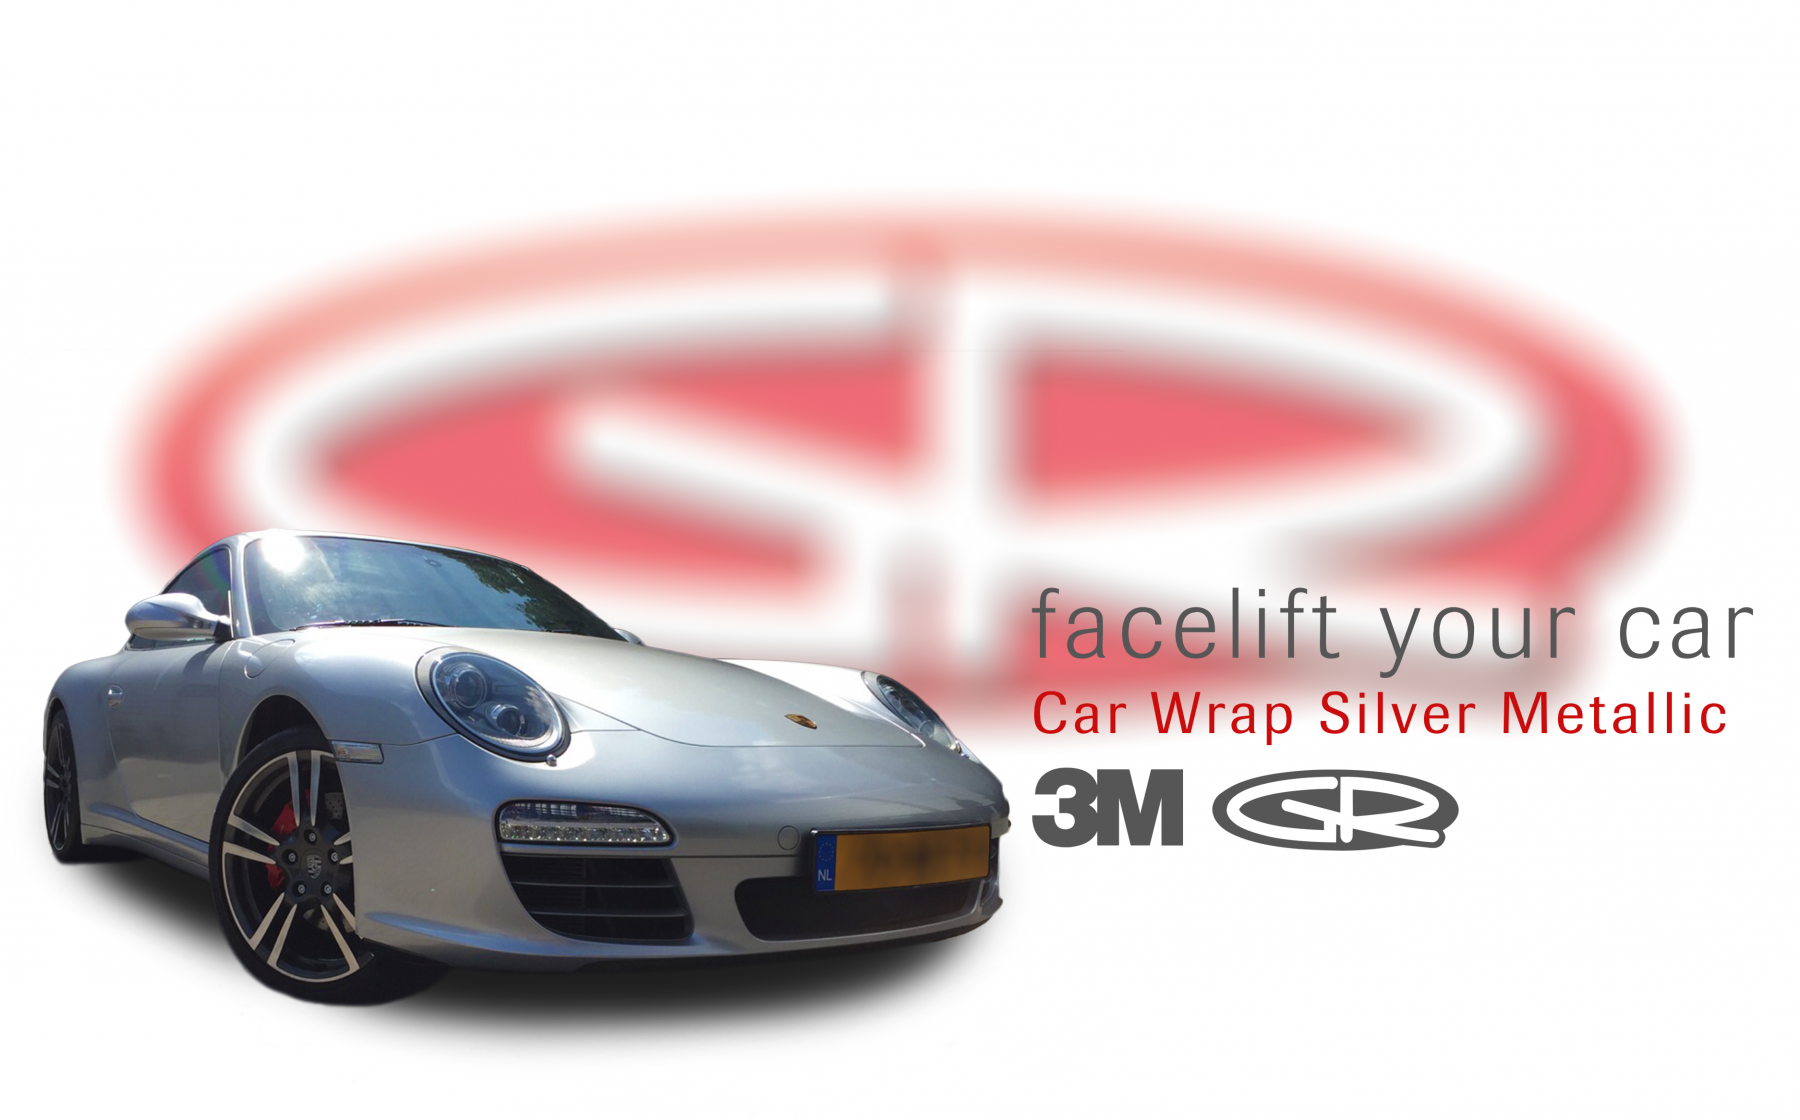 Car Wrap Silver Metallic